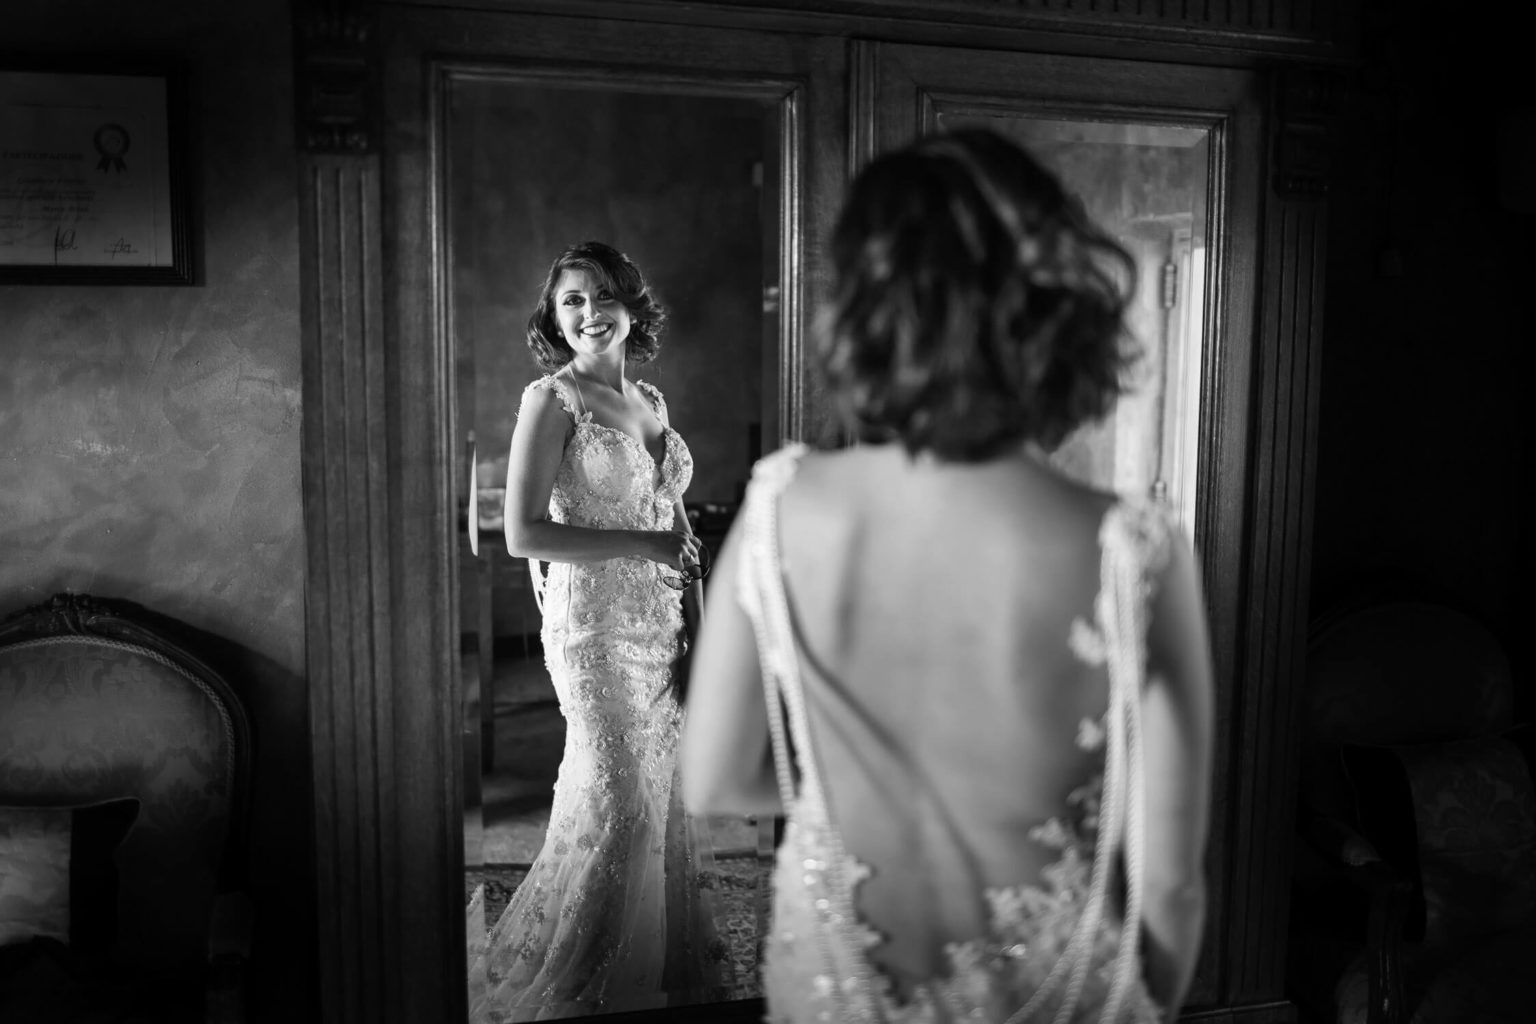 Elegant and beautiful reflection of the bride, photos for Sicilian weddings by Nino Lombardo